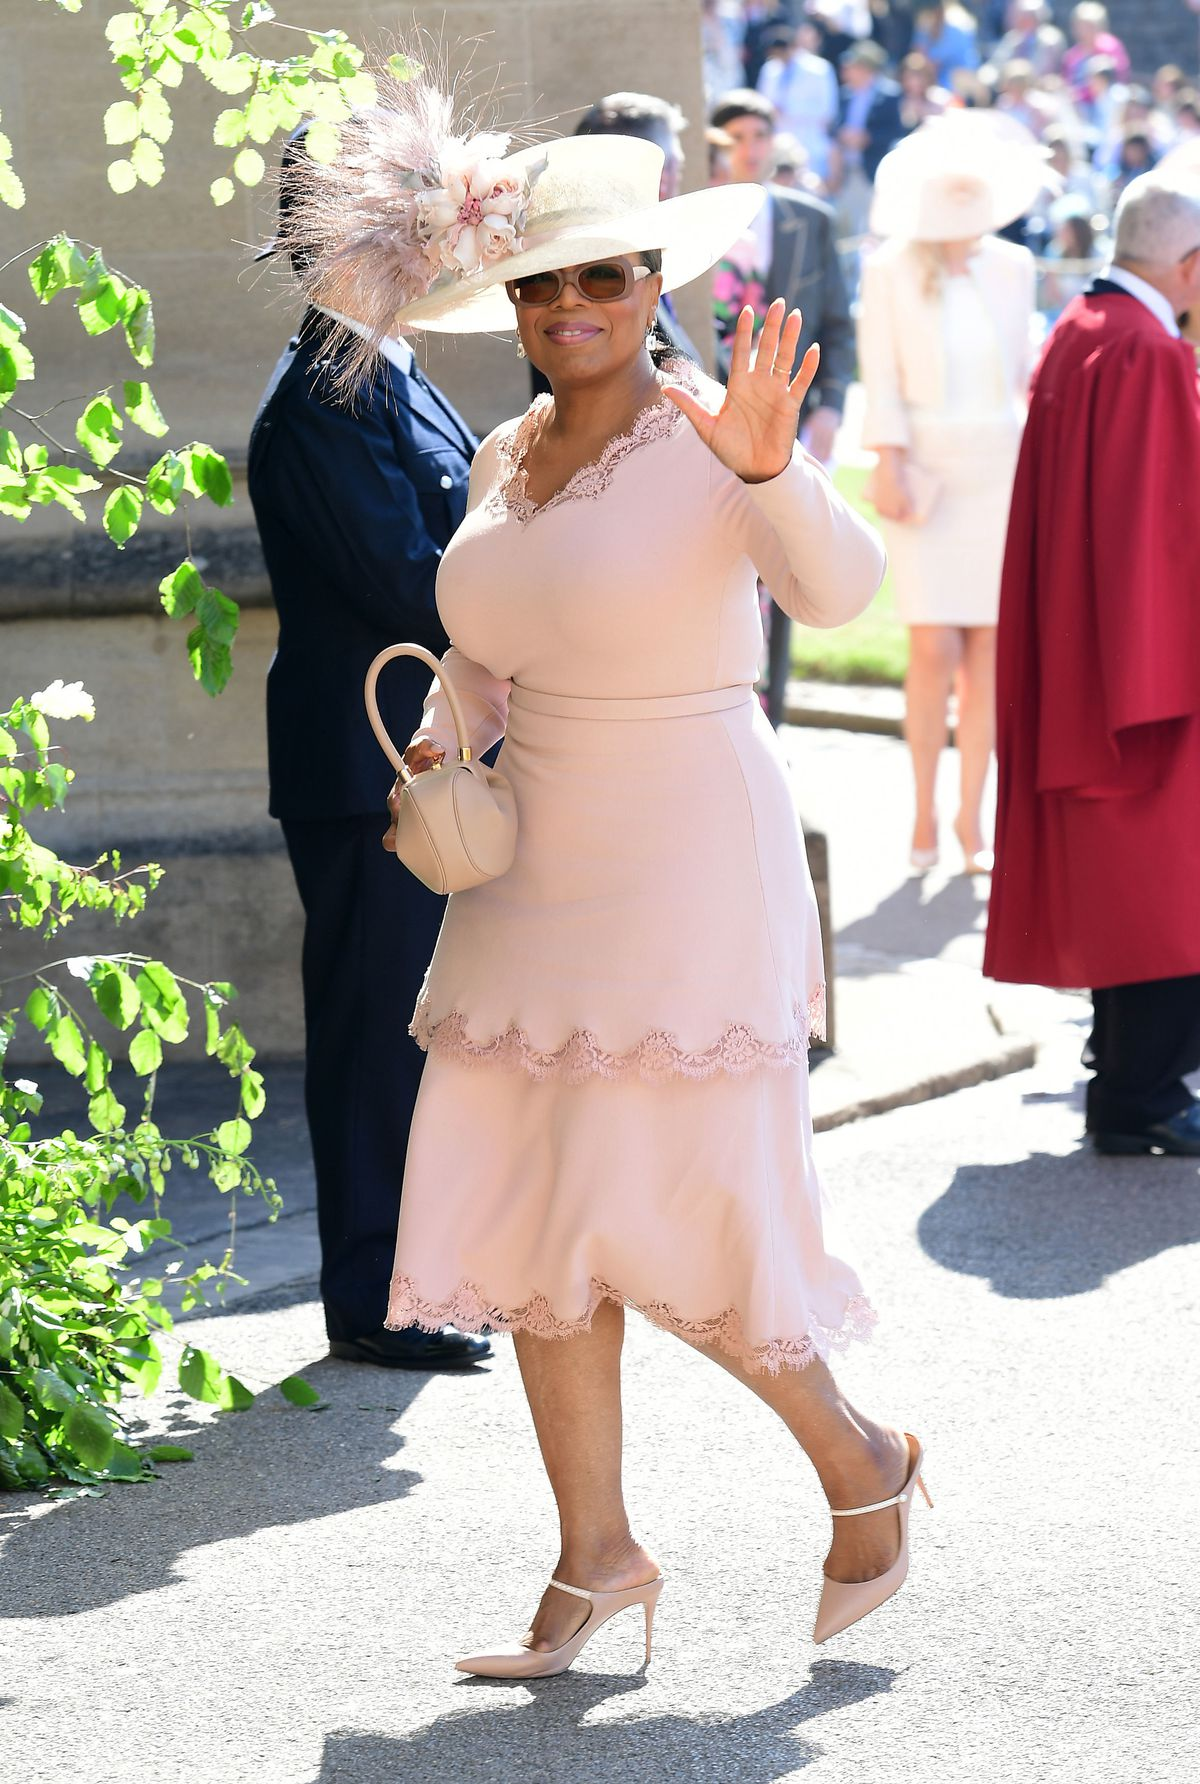 royal wedding: what oprah and other celebrities wore - racked